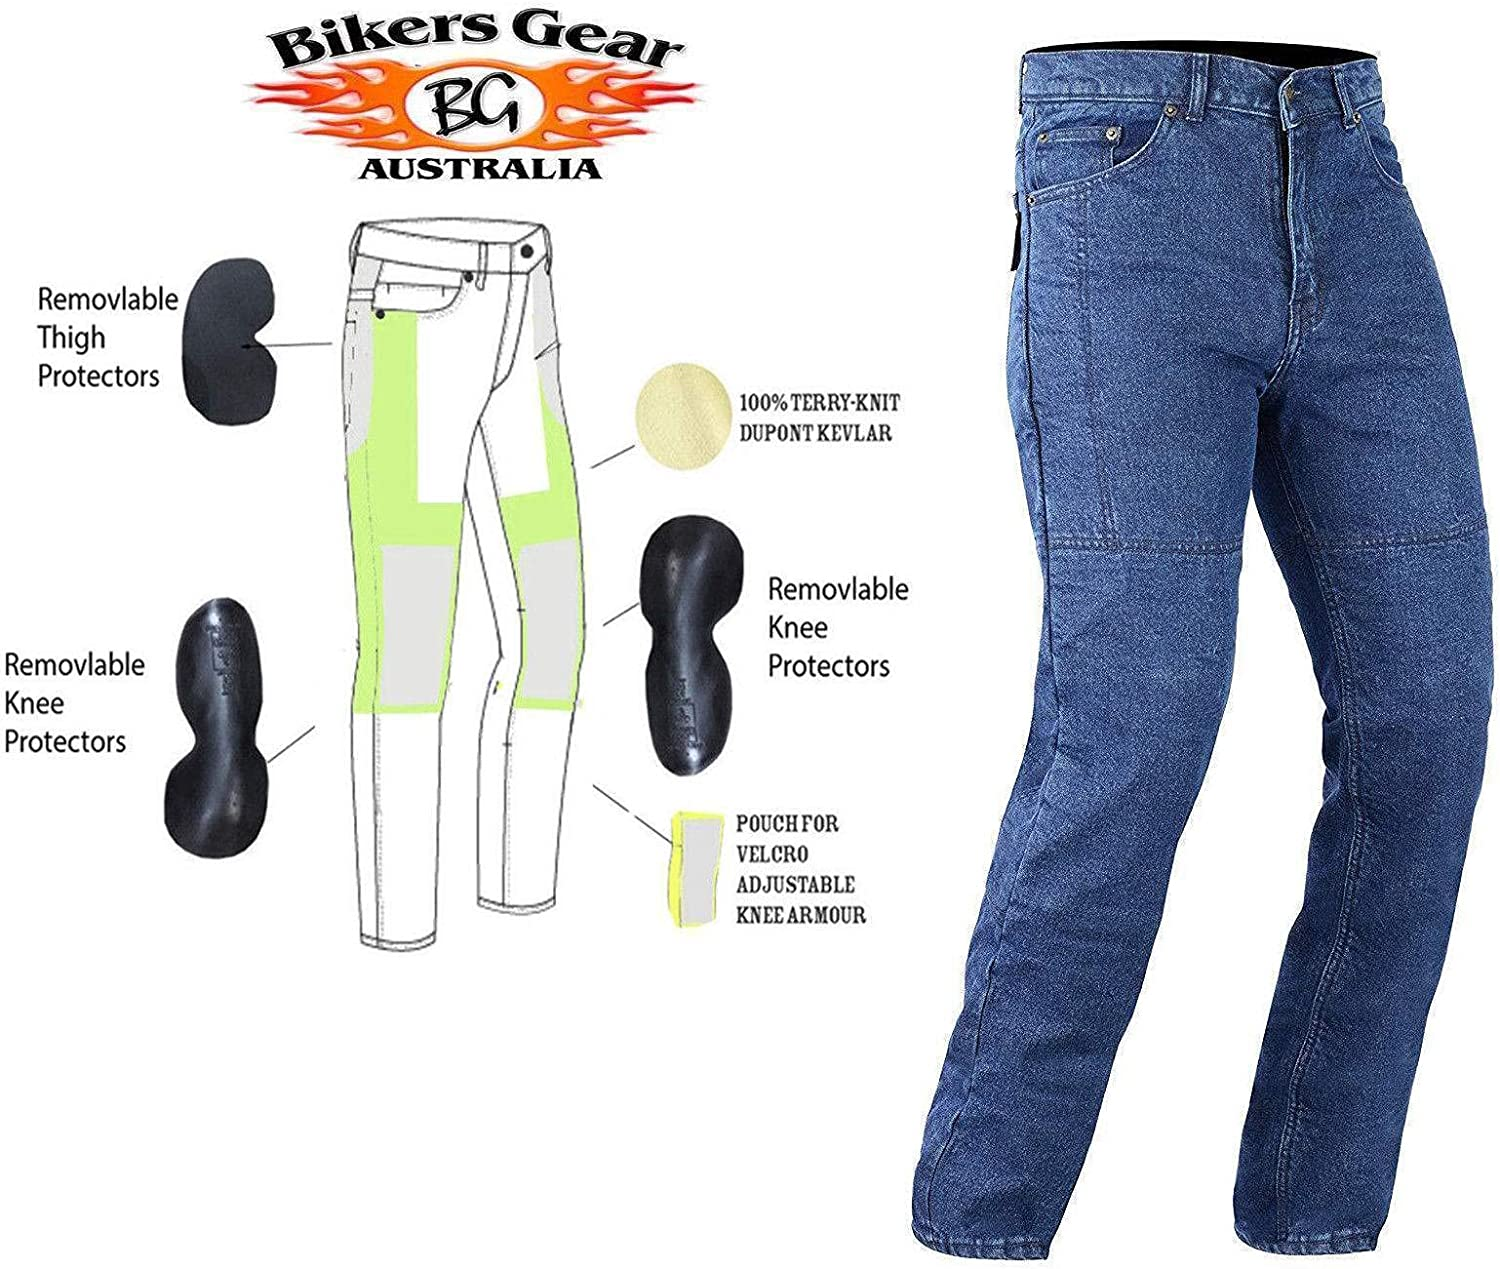 Bikers Gear Australia Ladies Black Stretch Denim Kevlar Lined Protective Motorcycle Jeans with Removable CE1621-1 Armour UK 8S EU XS